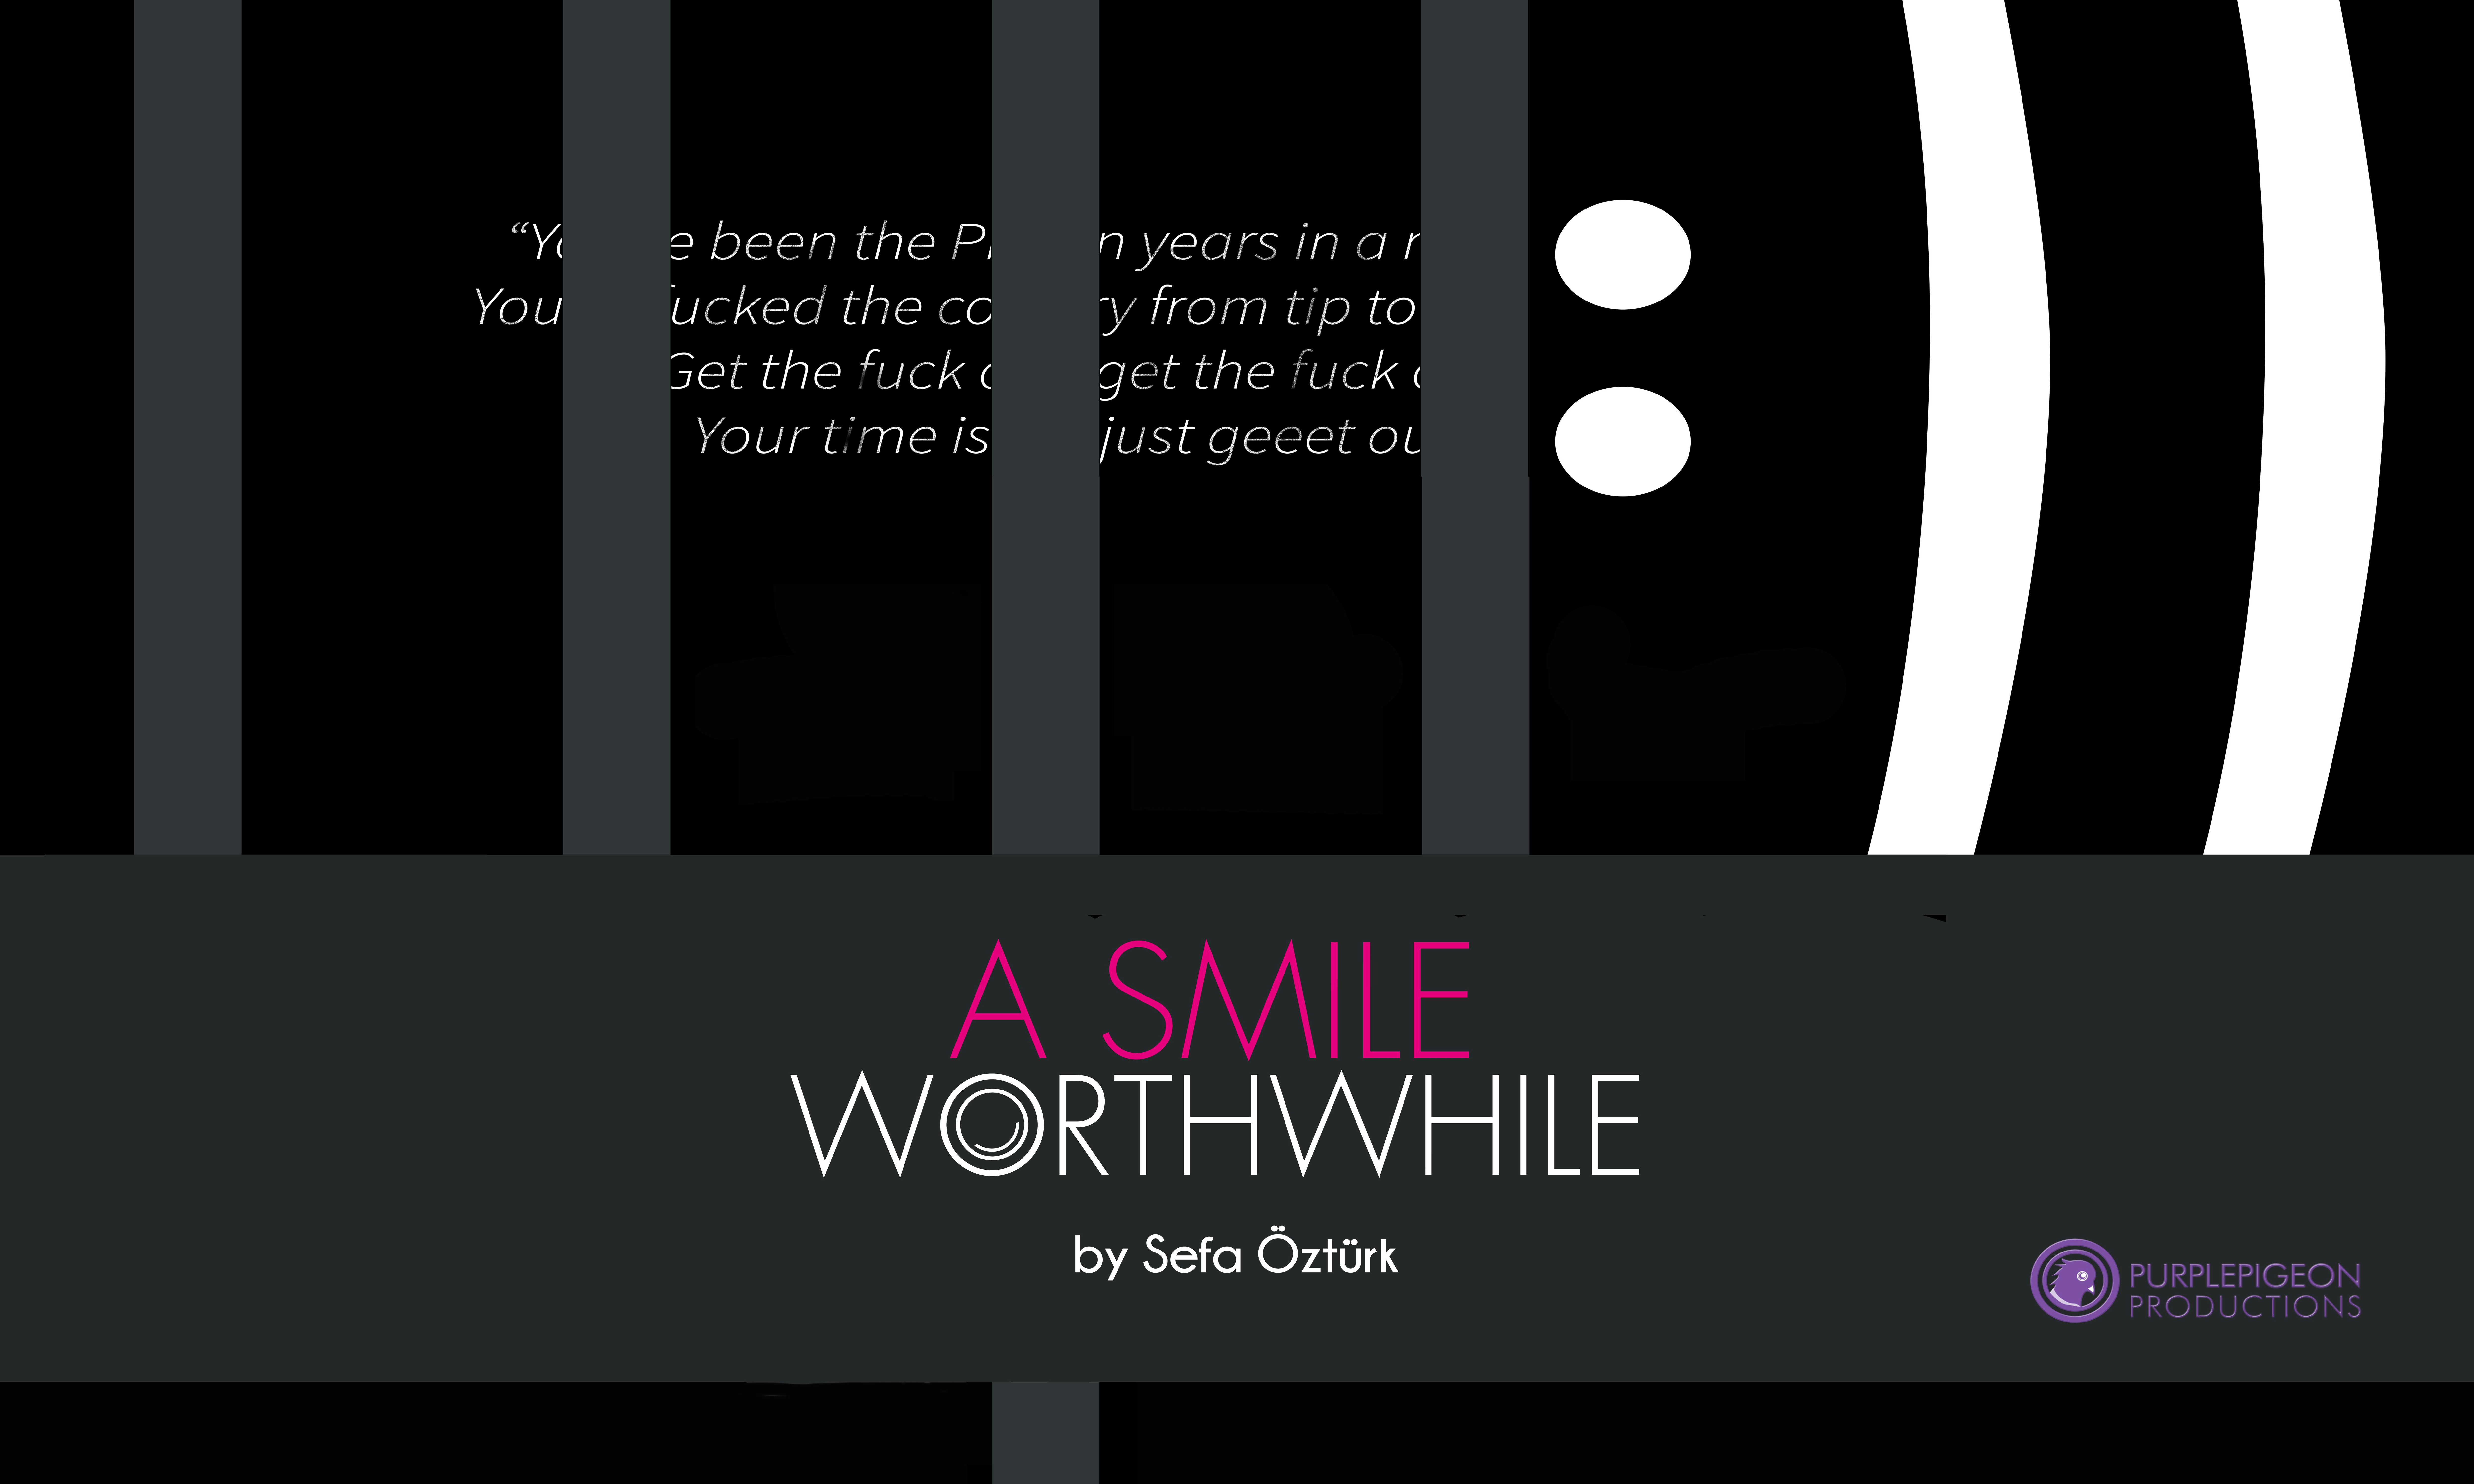 A Smile Worthwhile